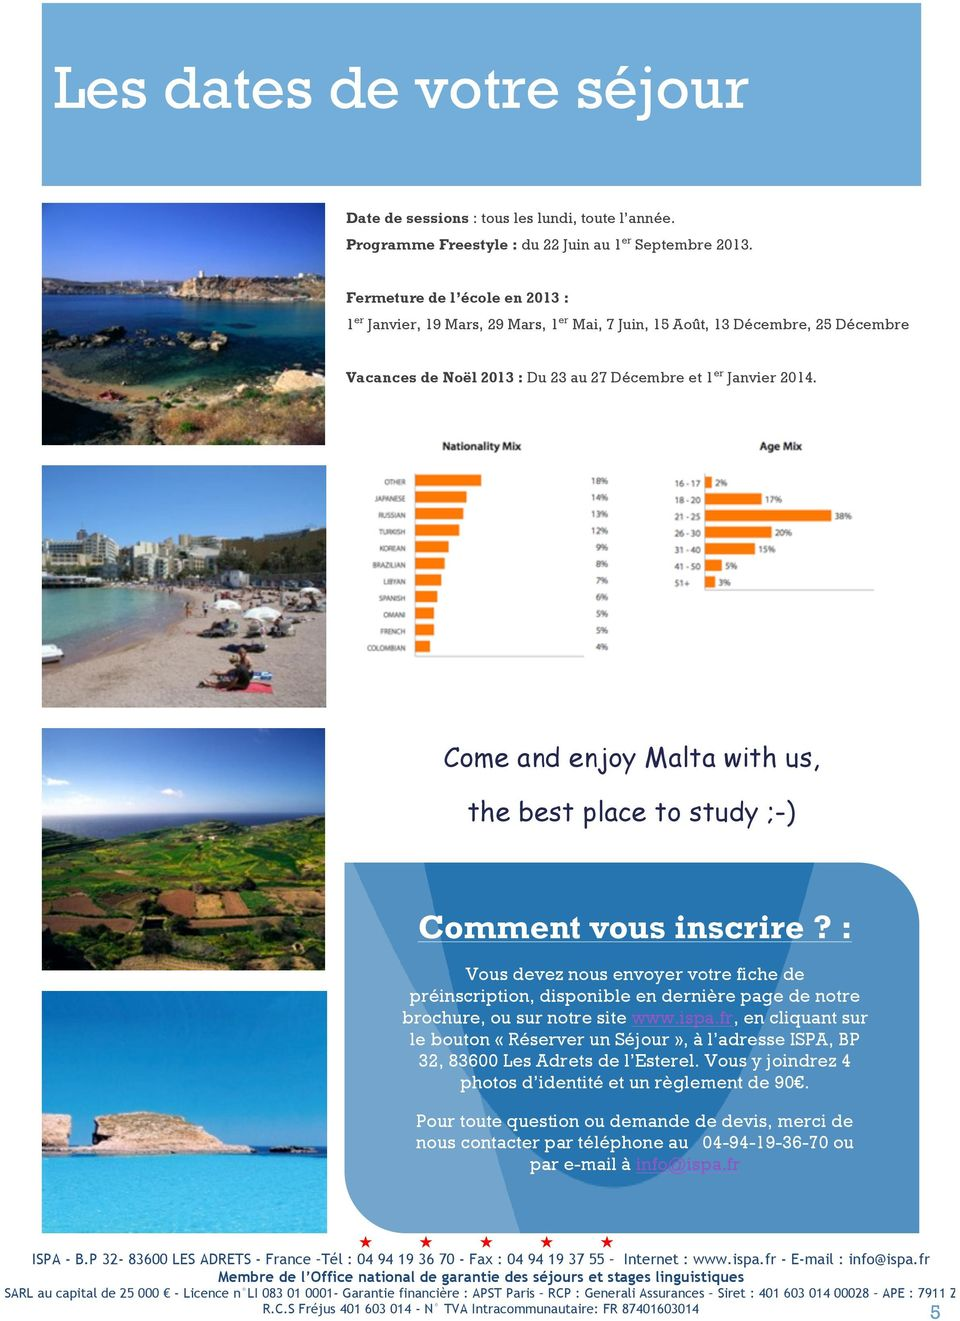 Come and enjoy Malta with us, the best place to study ;-) Comment vous inscrire?